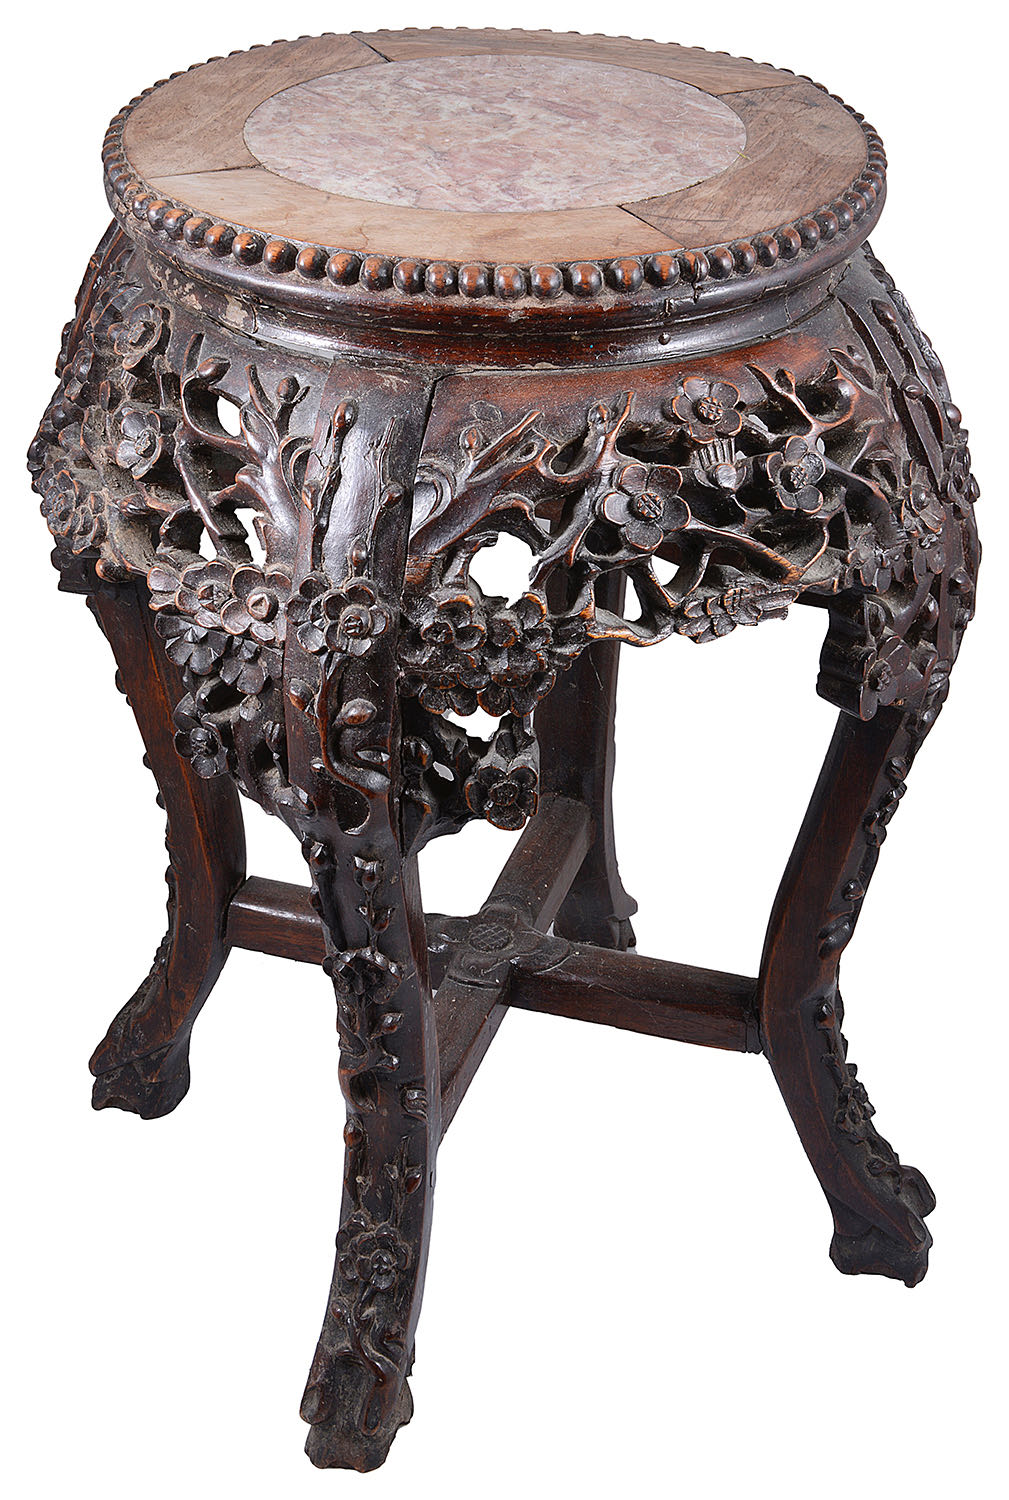 Lot 5 - An early 20th century Chinese export rosewood low jardiniere stand